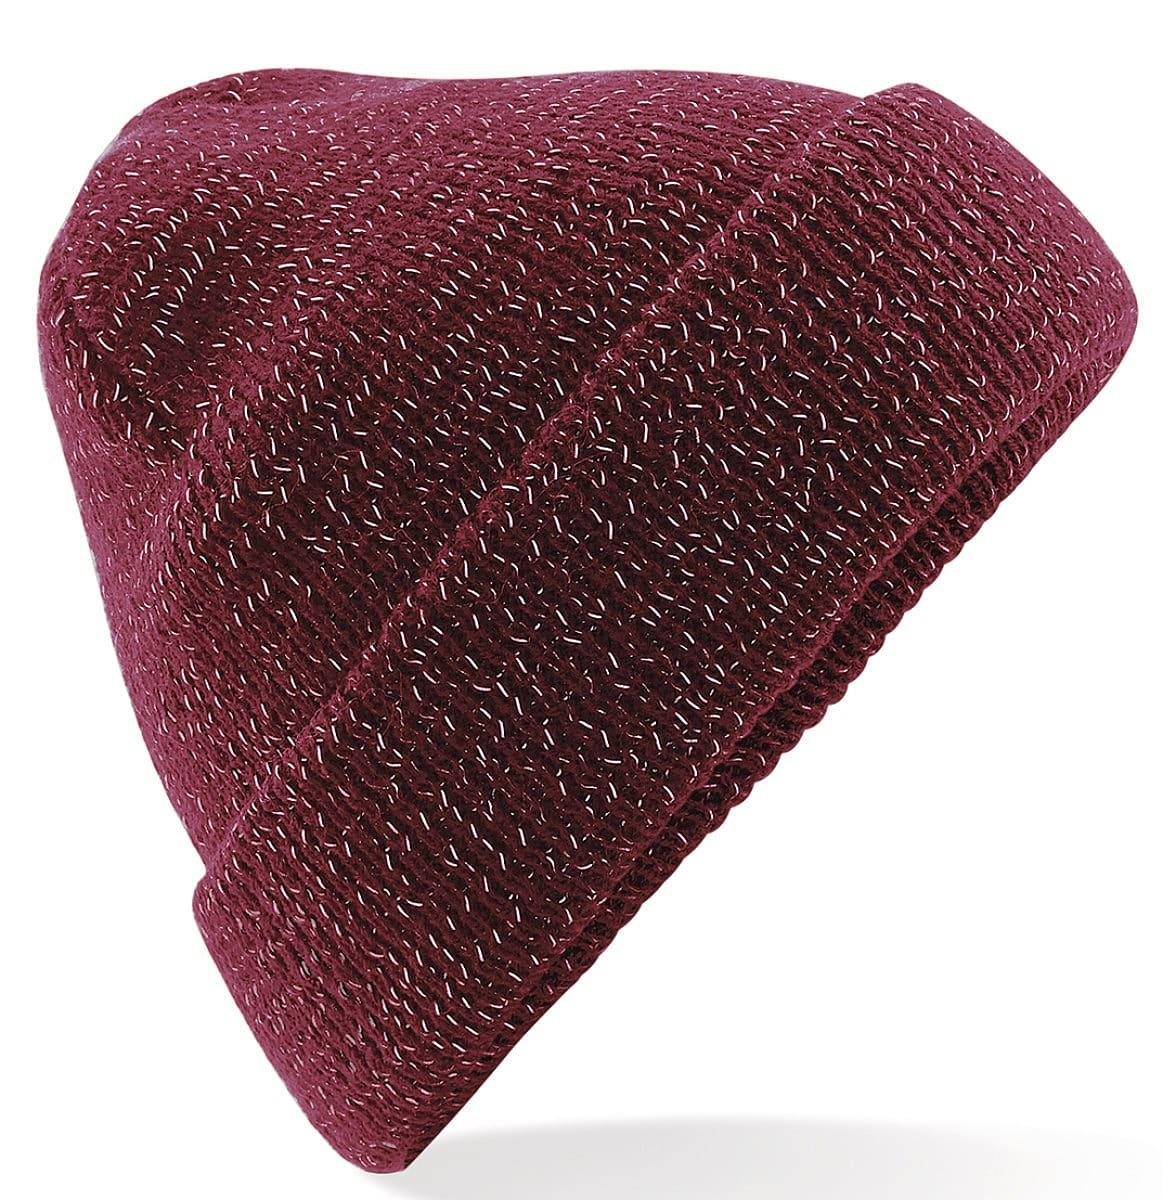 Beechfield Reflective Beanie Hat in Burgundy (Product Code: B407)